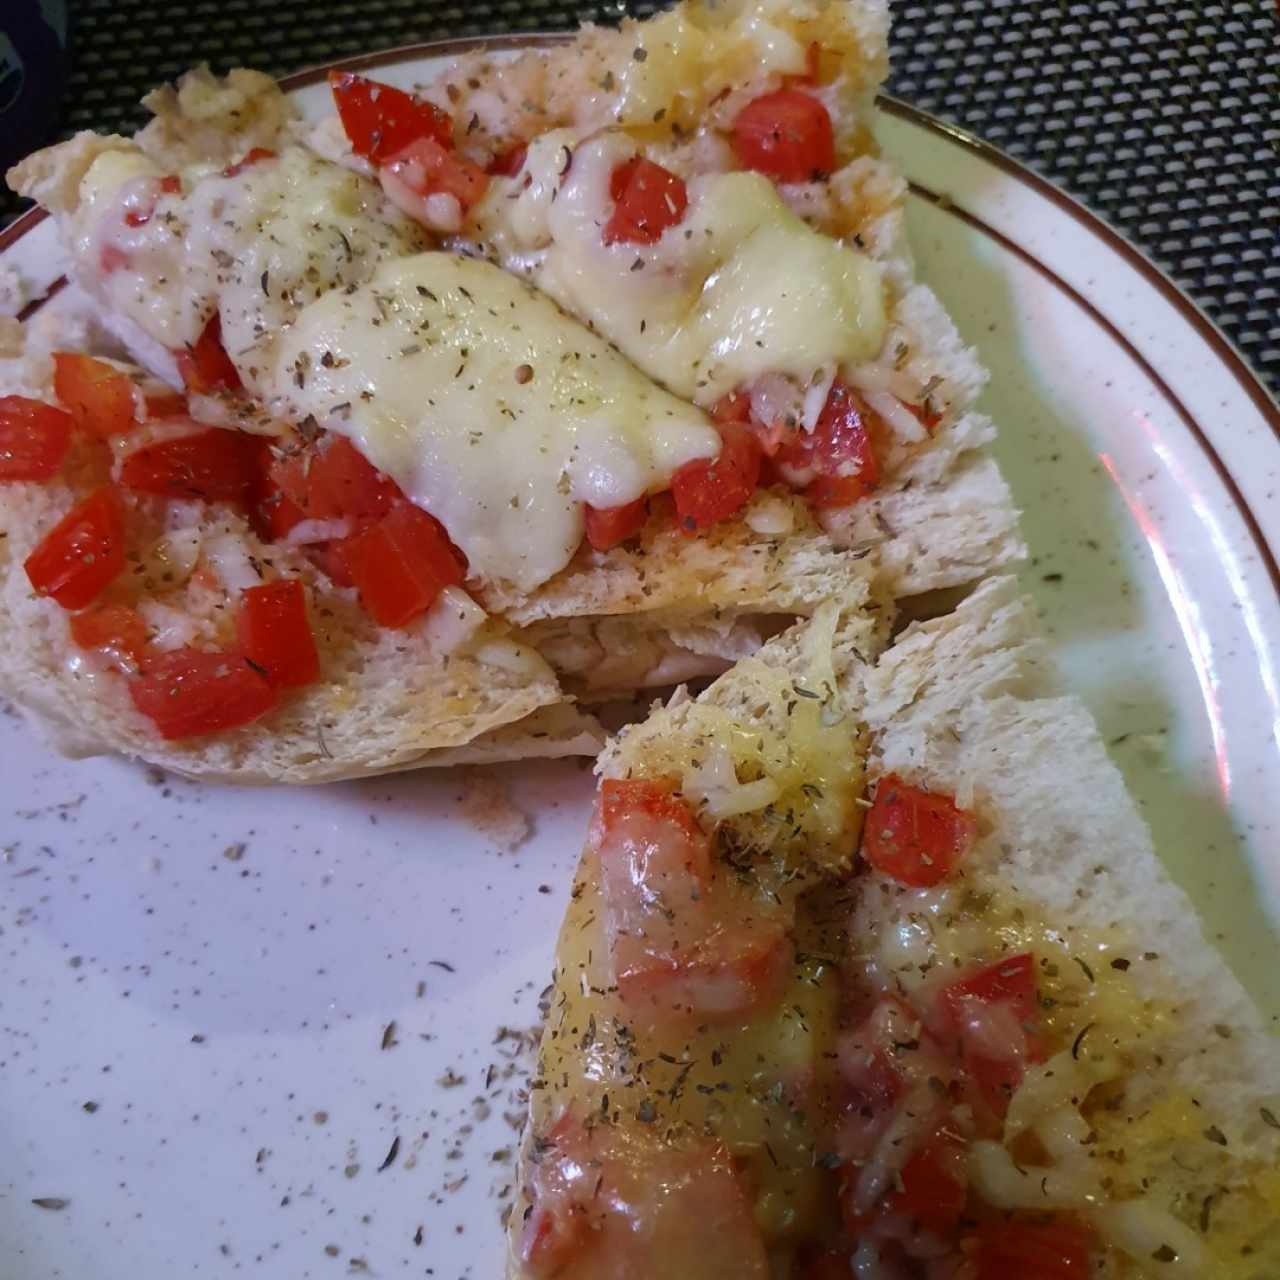 pan, queso y tomate